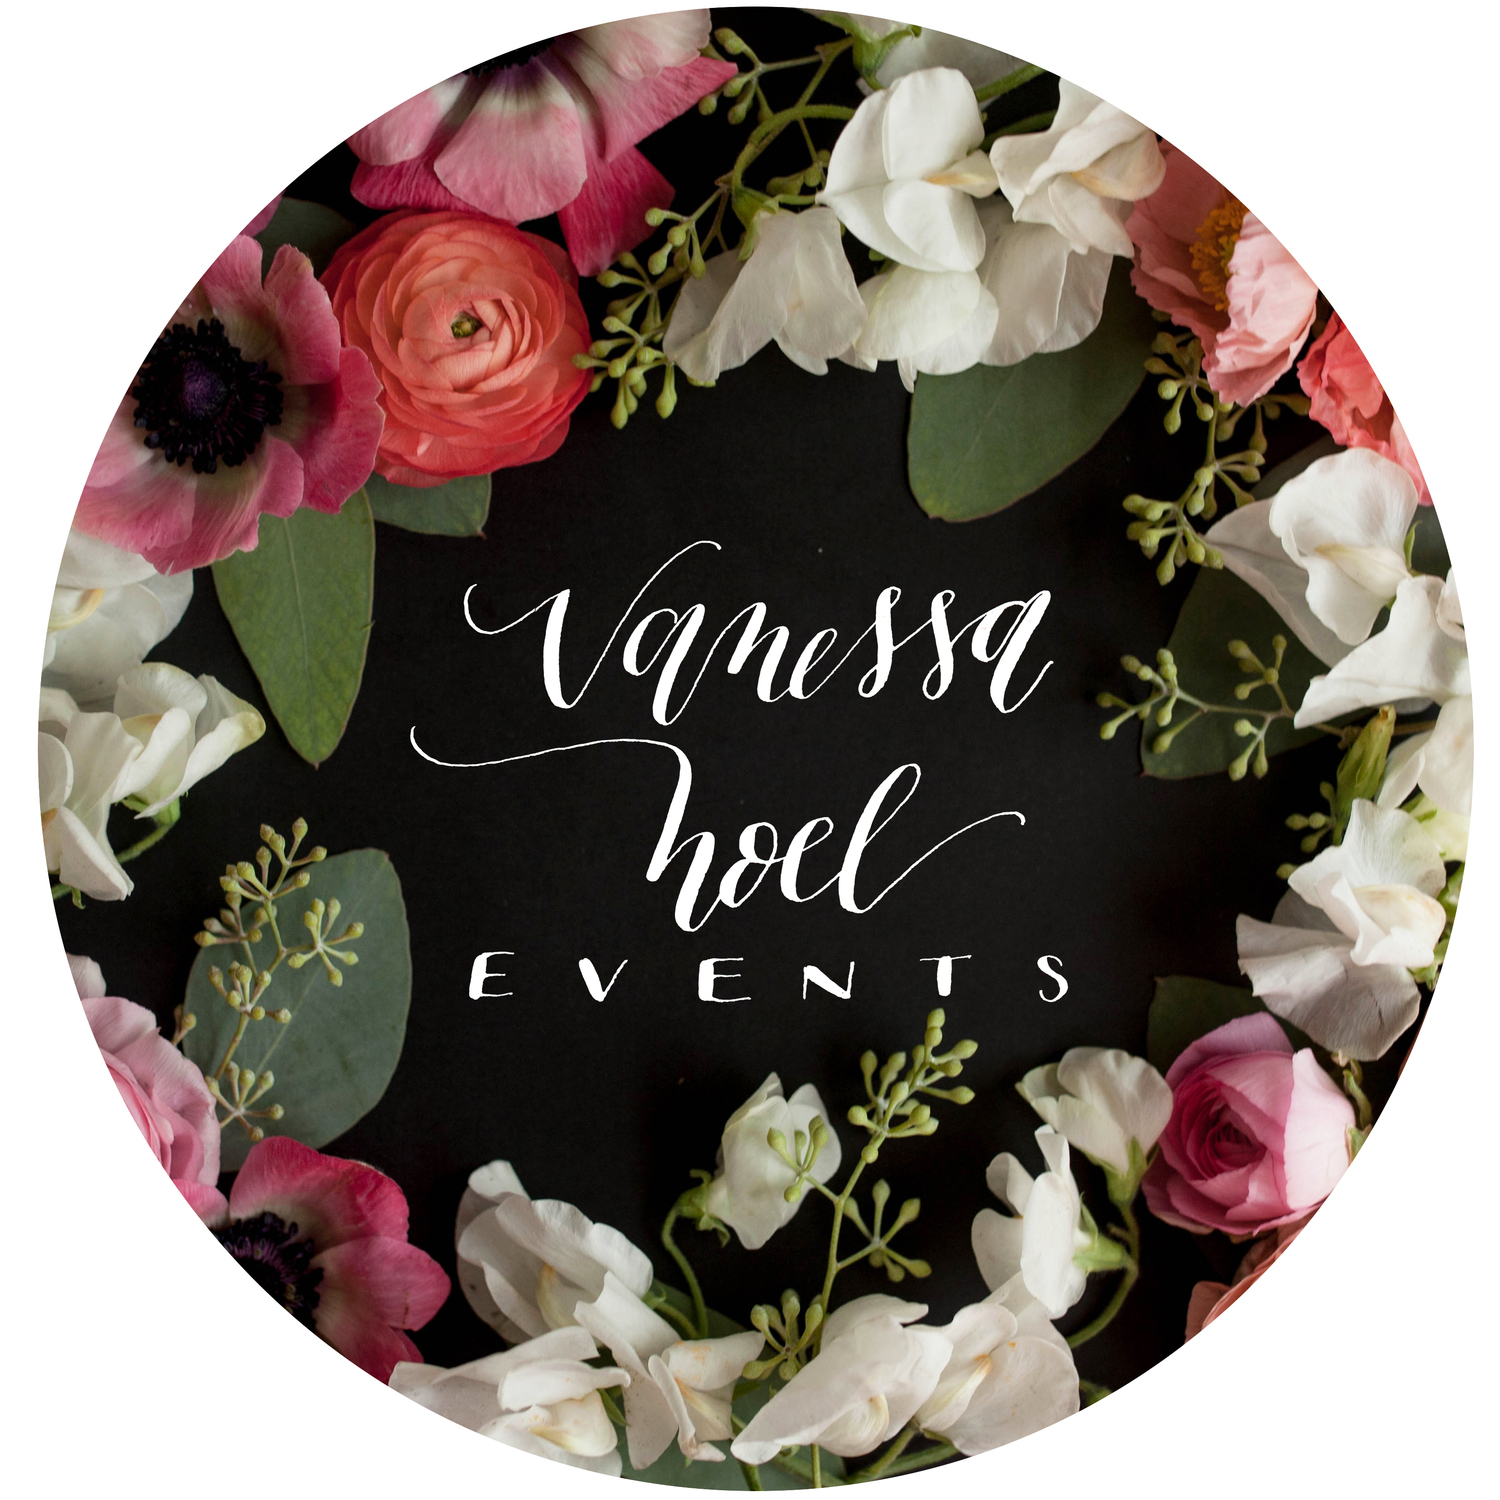 Vanessa Noel Events